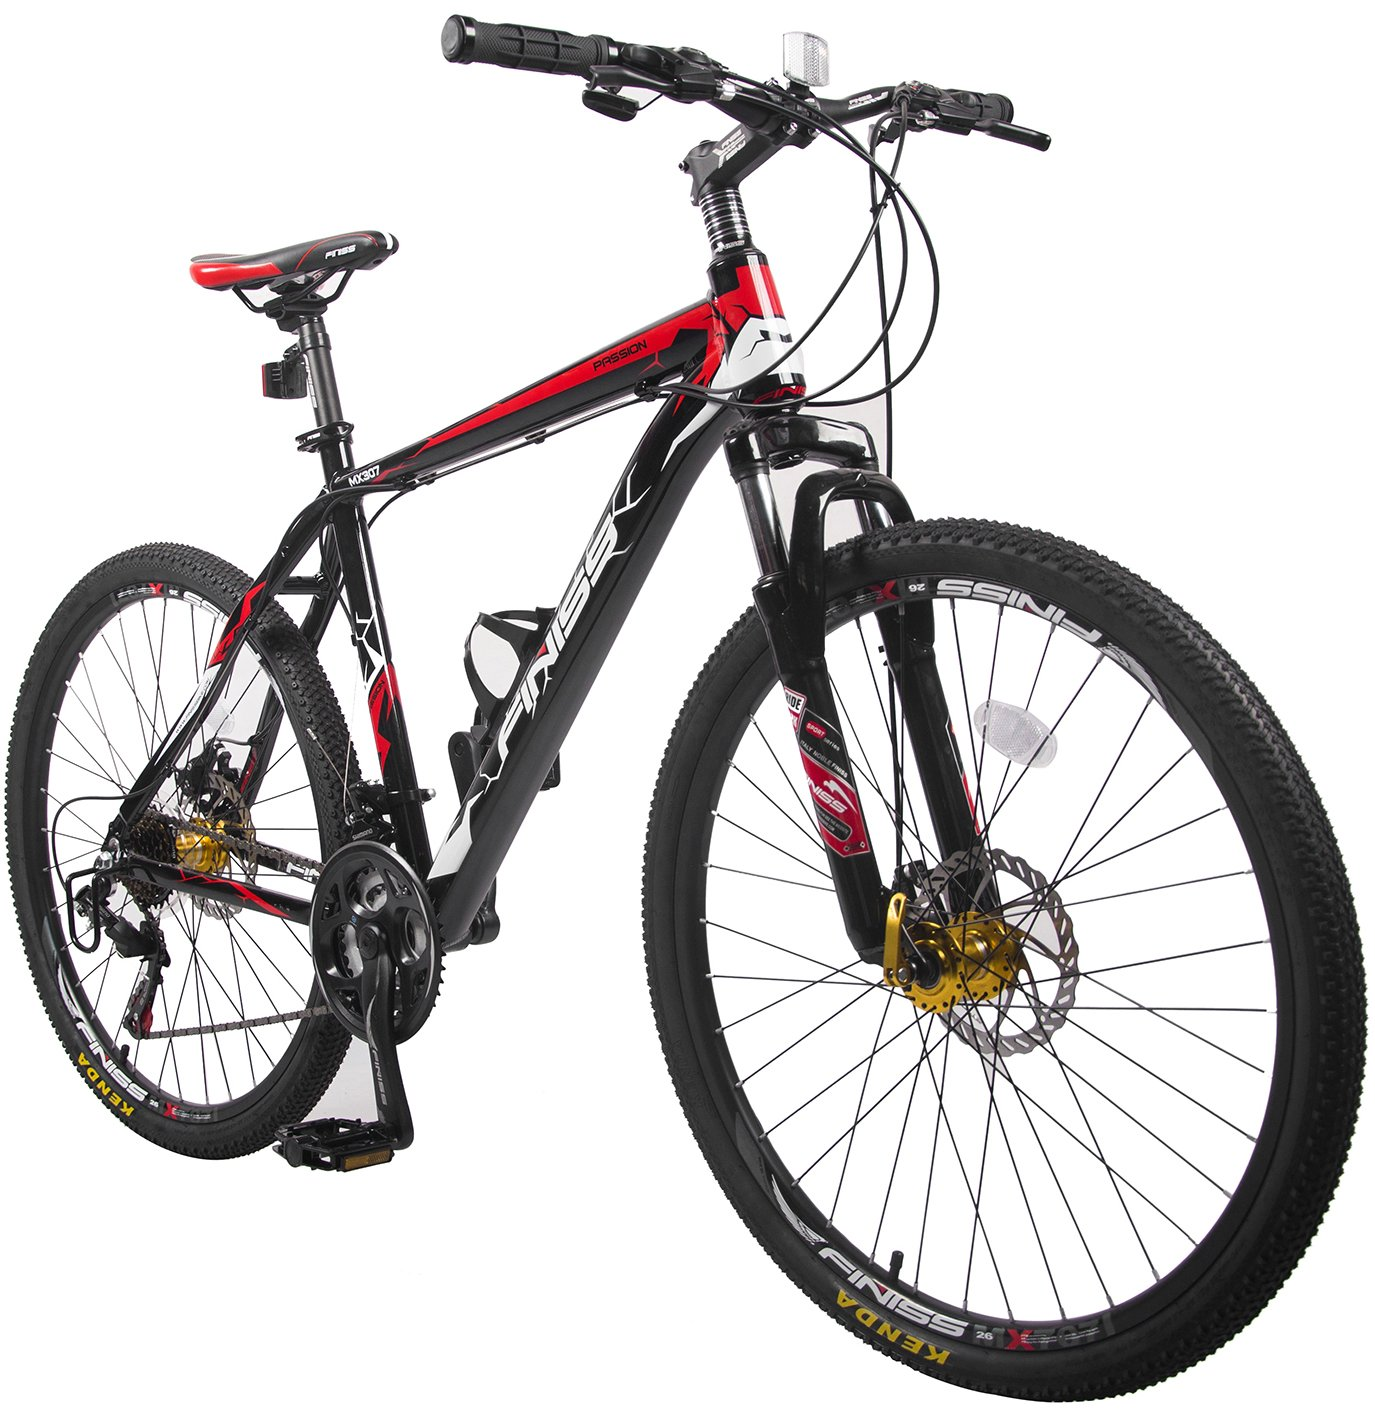 Merax Finiss 26-inch Aluminum 21-speed Mountain Bike with Disc Brakes